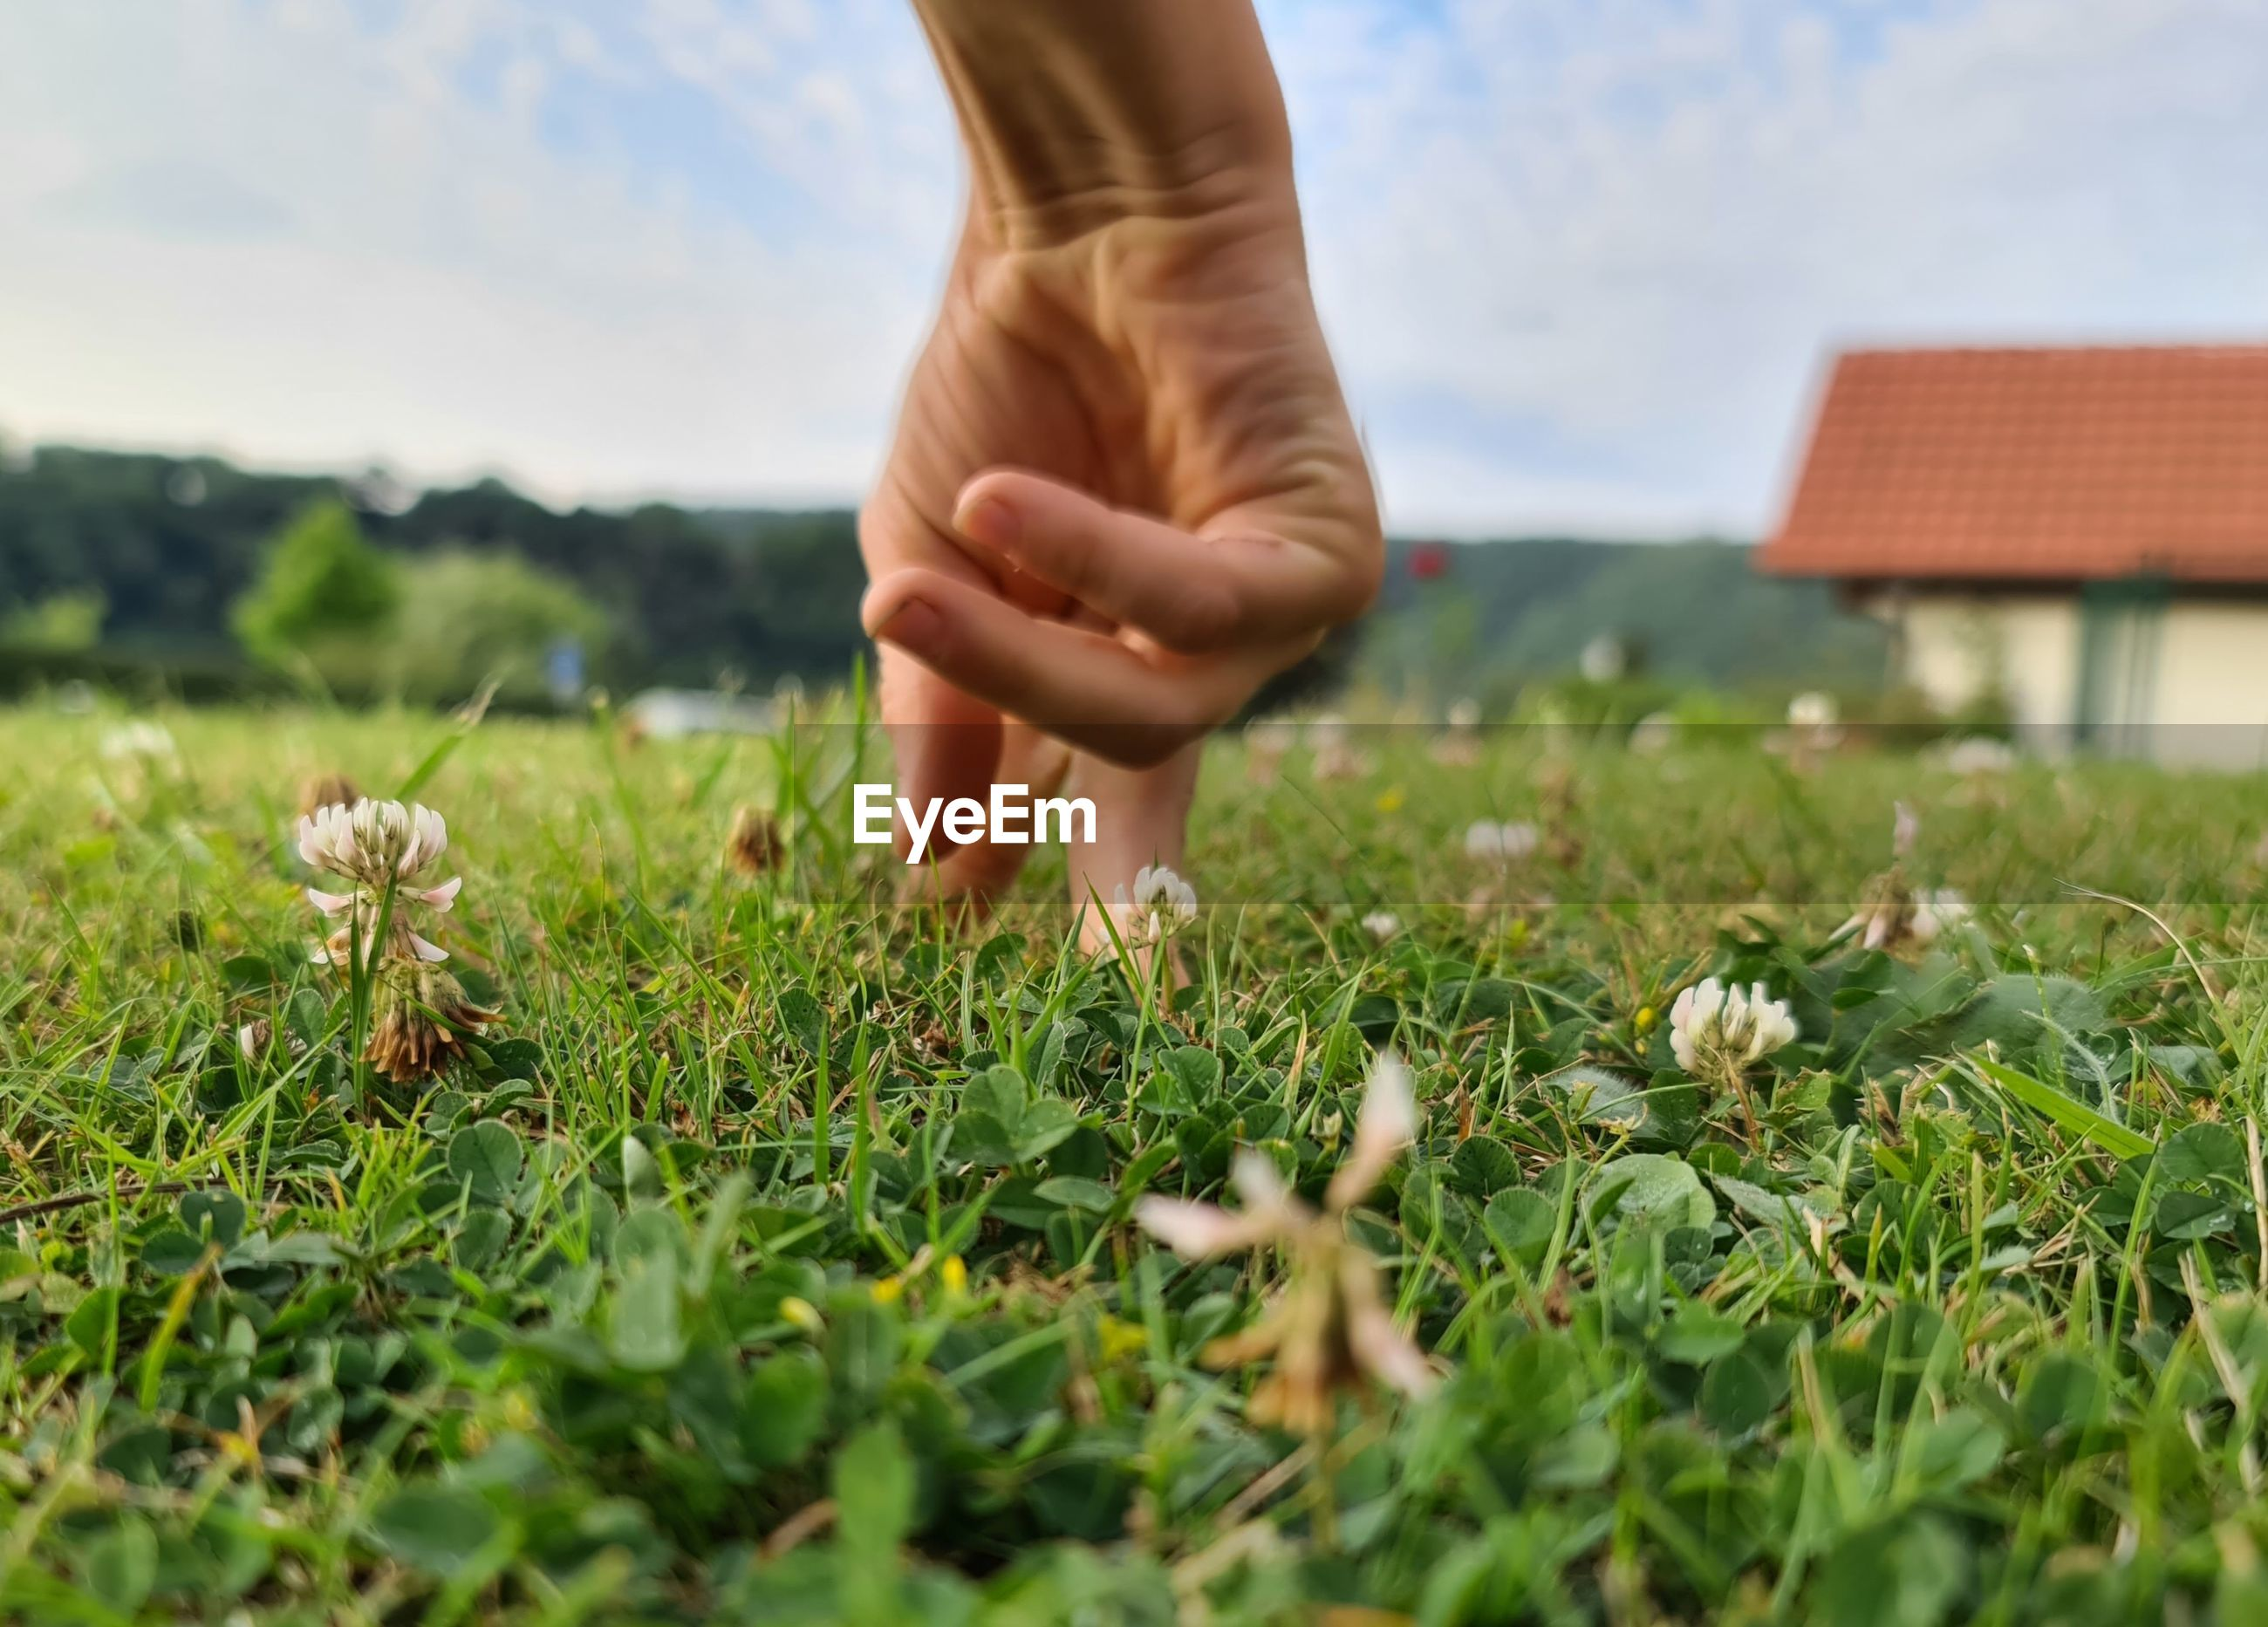 CLOSE-UP OF PERSON HAND ON GRASS